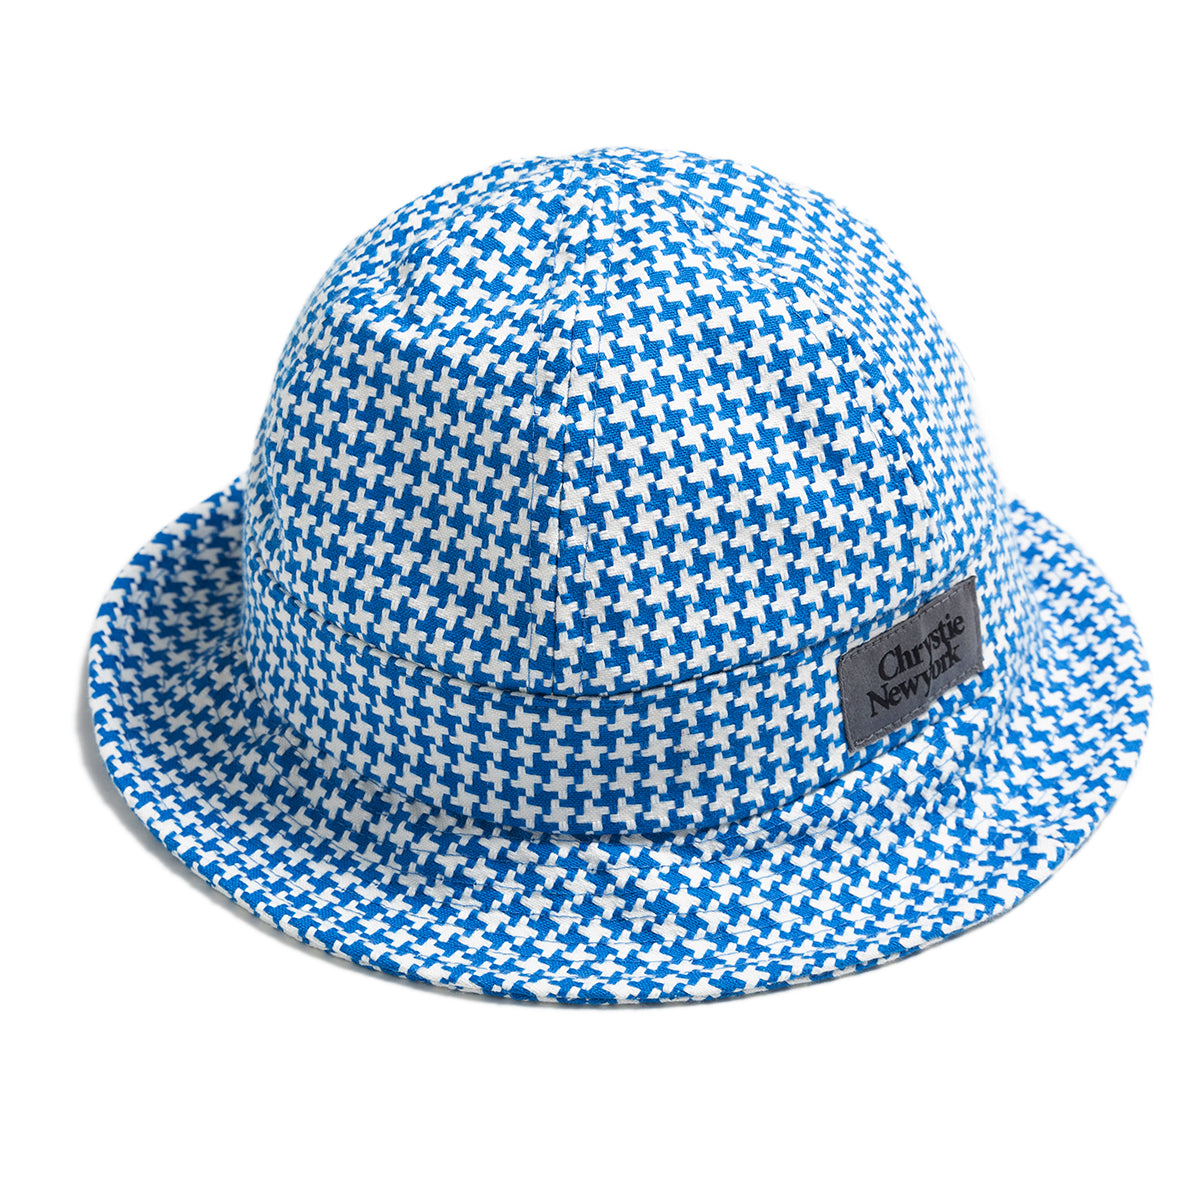 Load image into Gallery viewer, Chrystie X Falcon Bowse Bucket Hat_Type 07